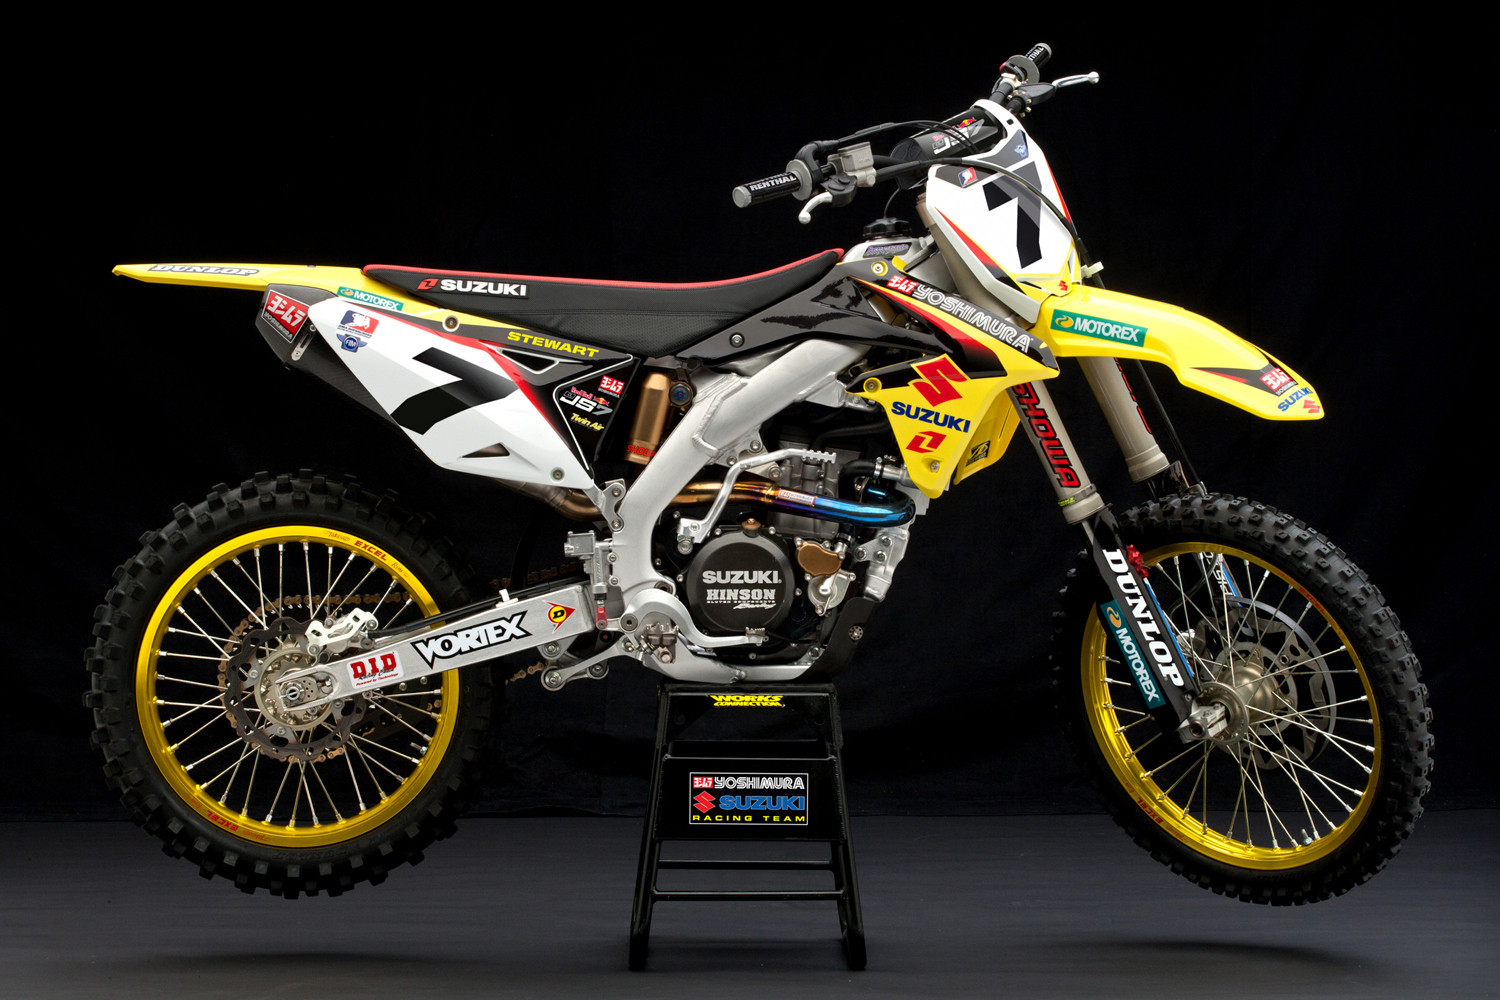 James Stewart/Team Yoshimura Suzuki Racing - First Look: James Stewart on Suzuki - Motocross Pictures - Vital MX